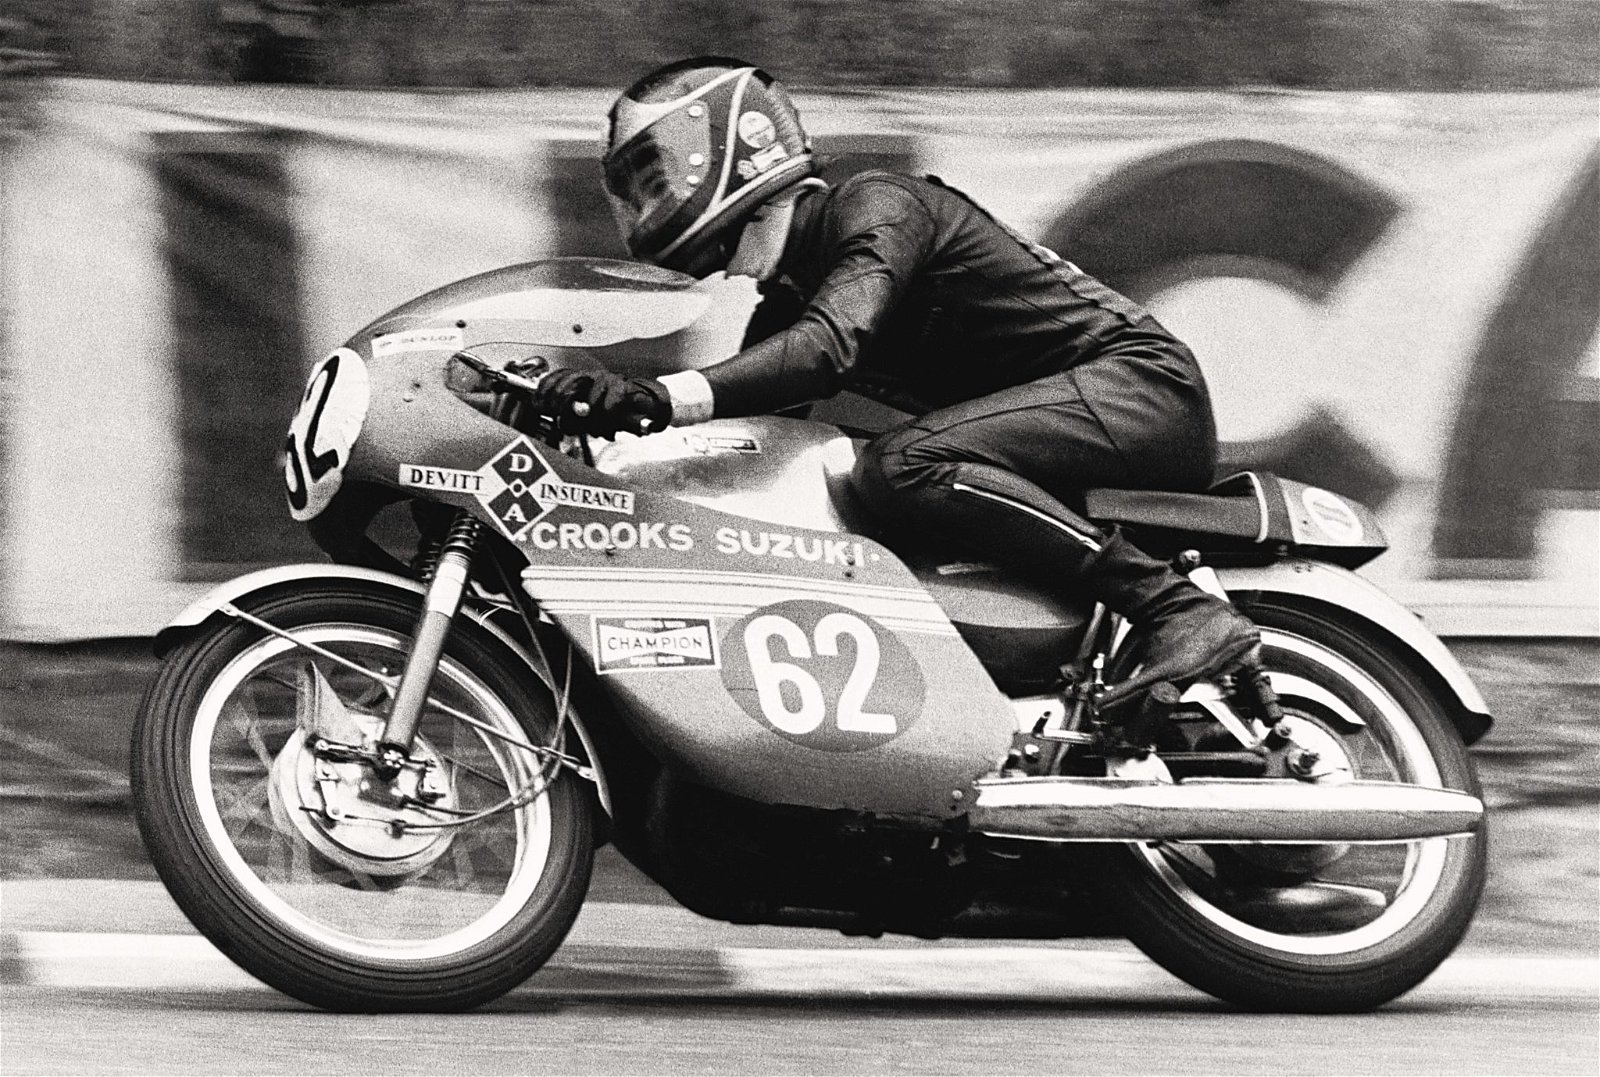 Sheene during the one and only year he raced at the Isle of Man TT 1971.